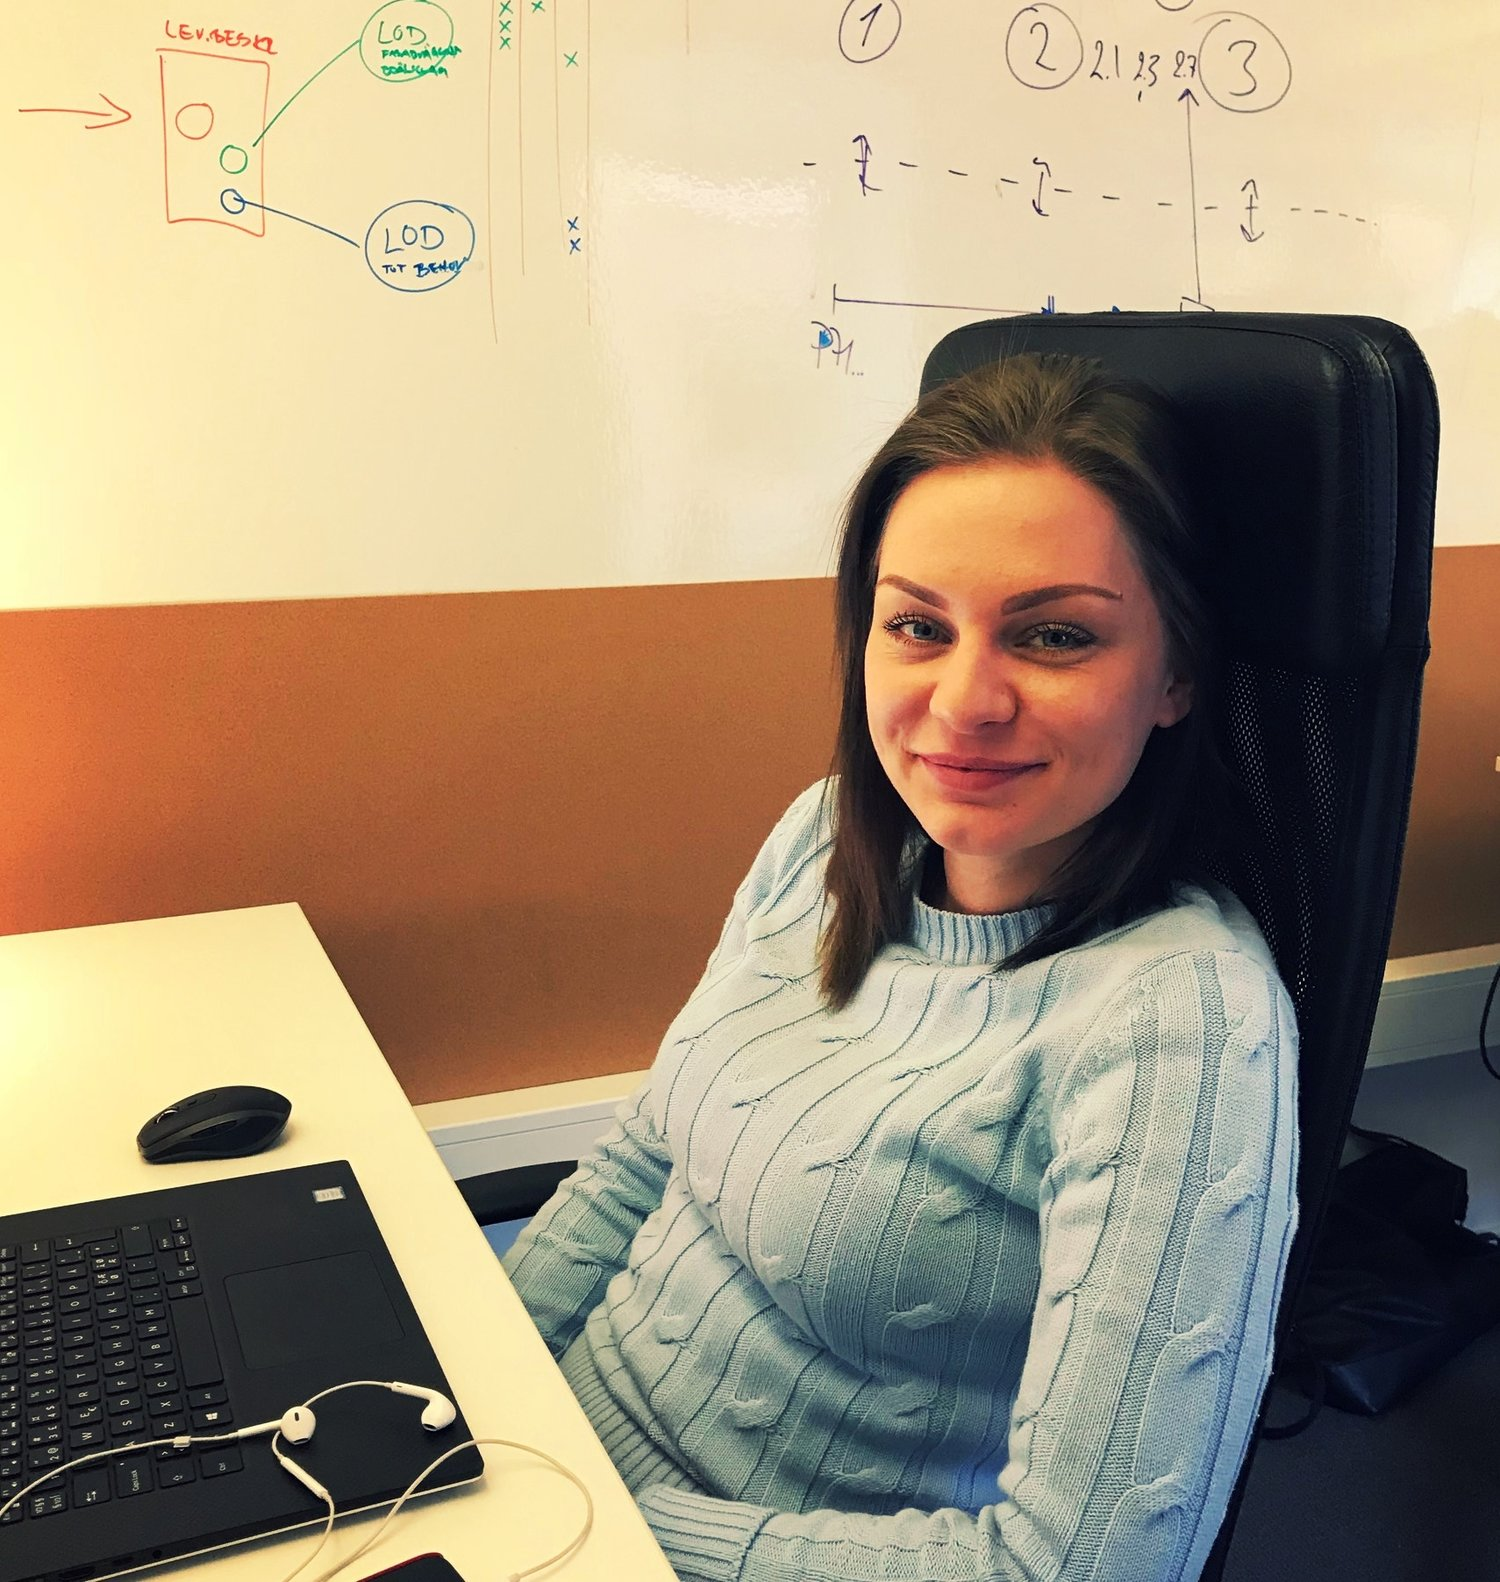 Eugenia has joined our team in Gothenburg